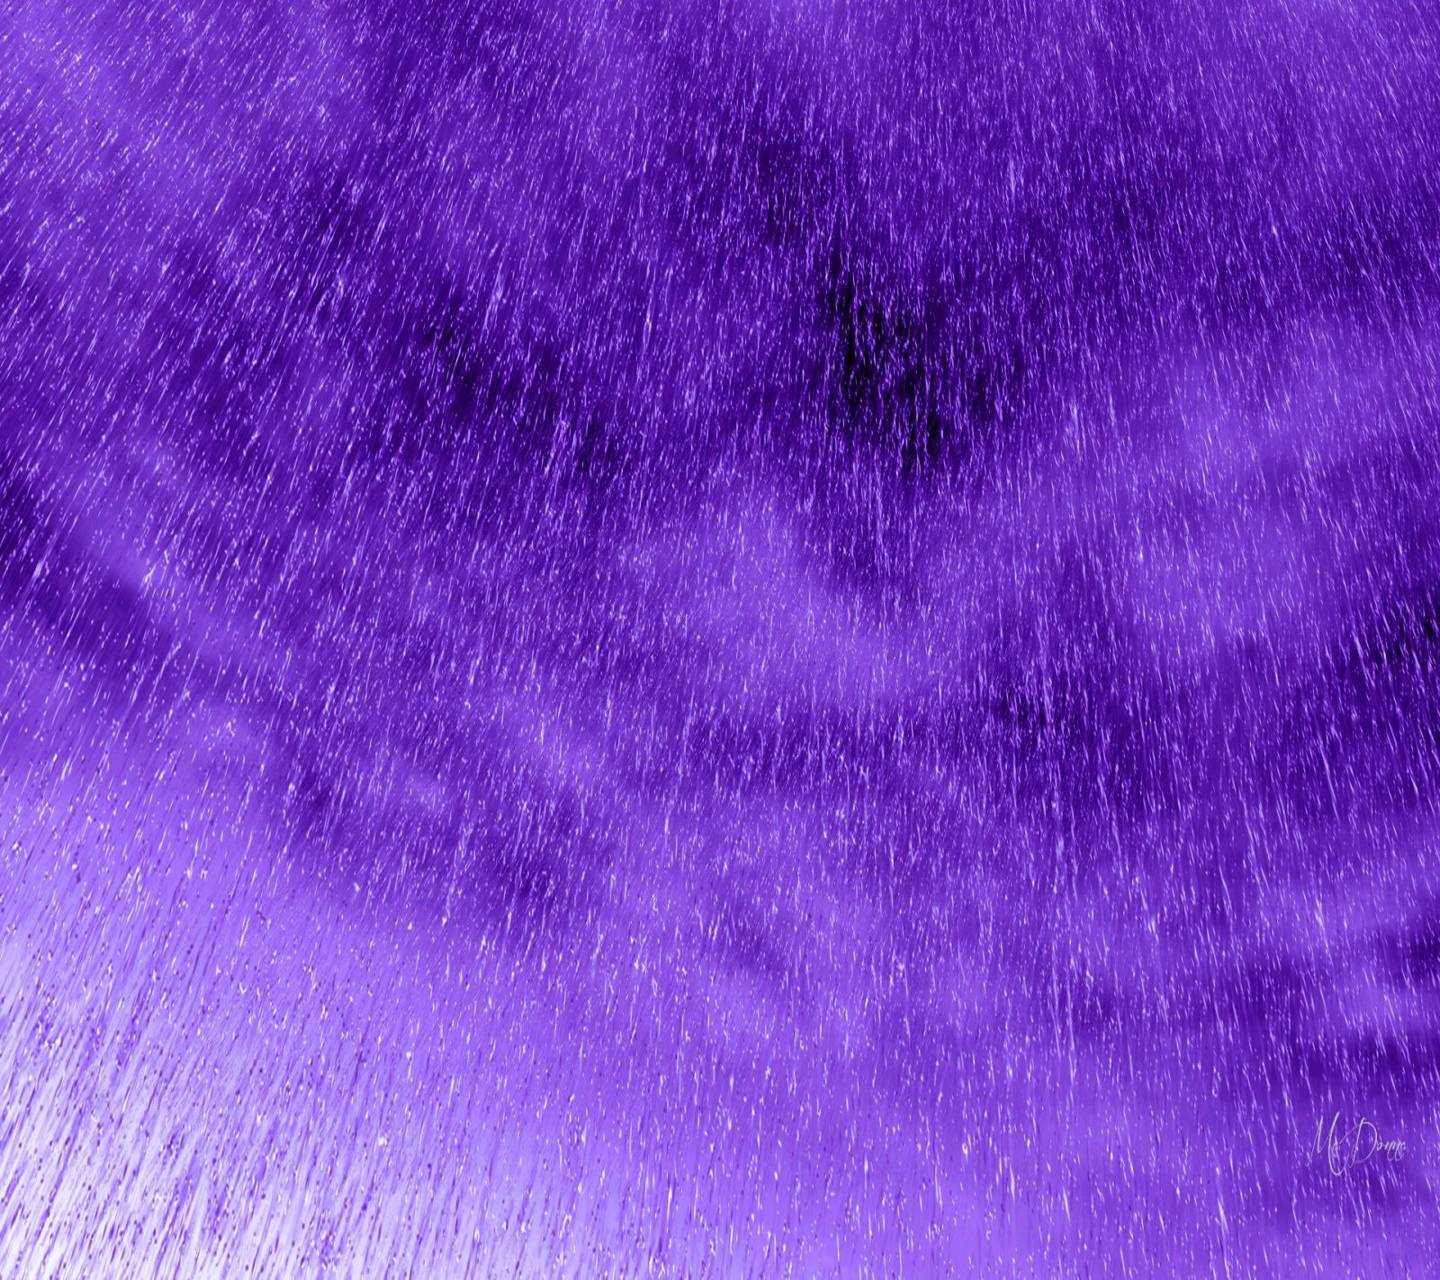 purple rain wallpaper by  savanna  - 67